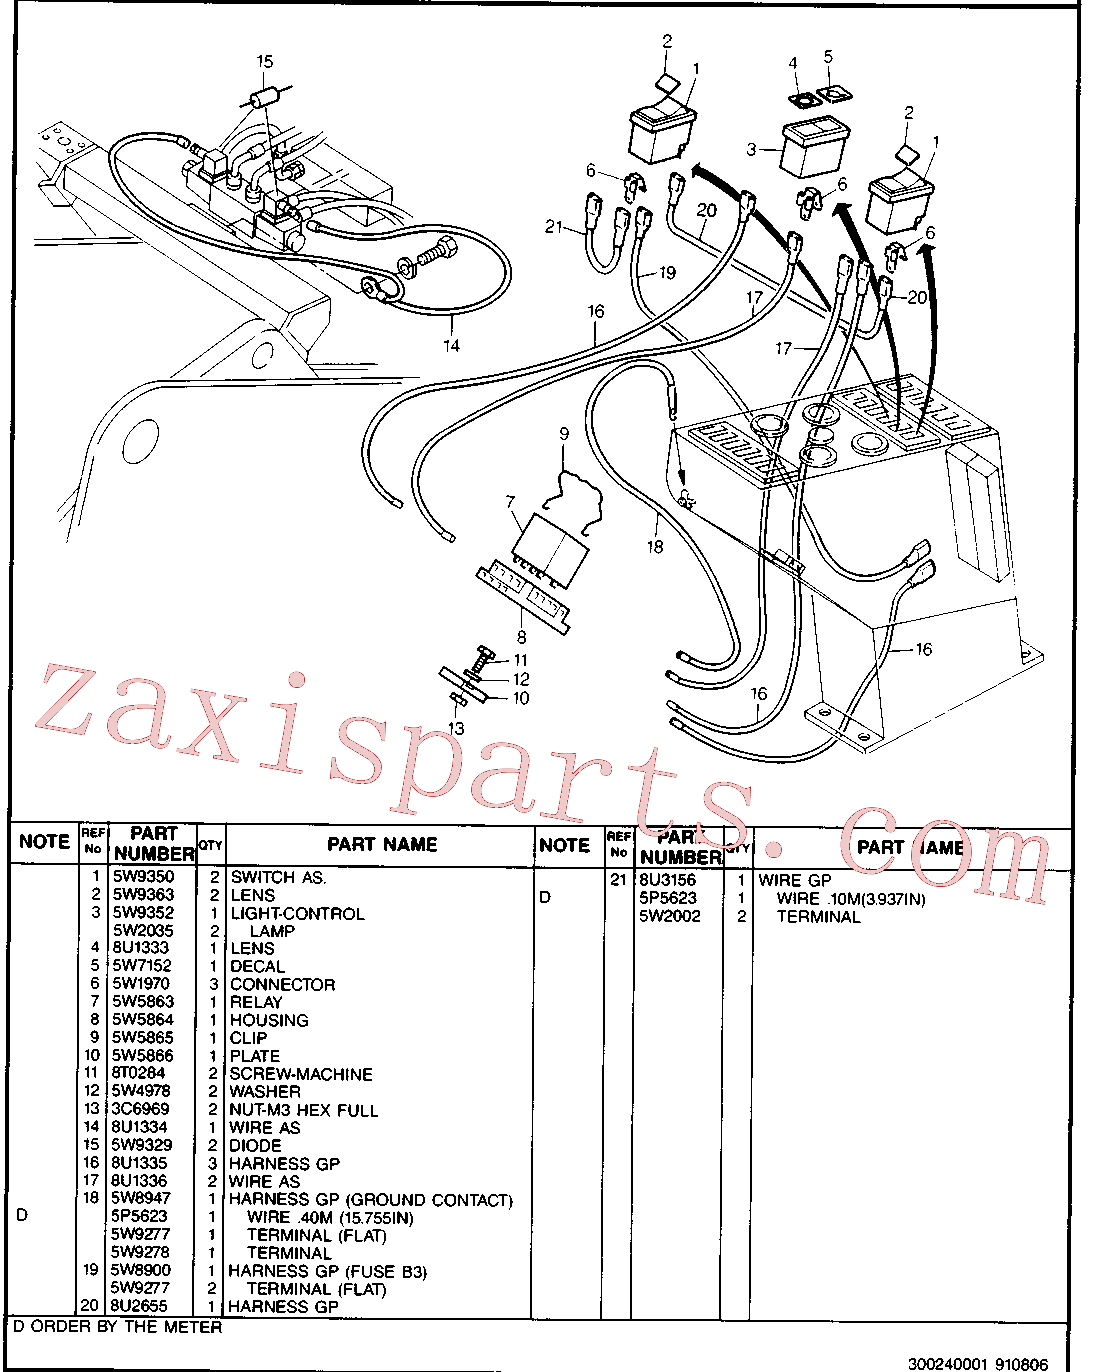 CAT 8U-1333 for 224B Excavator(EXC) hydraulic system 8U-4711 Assembly